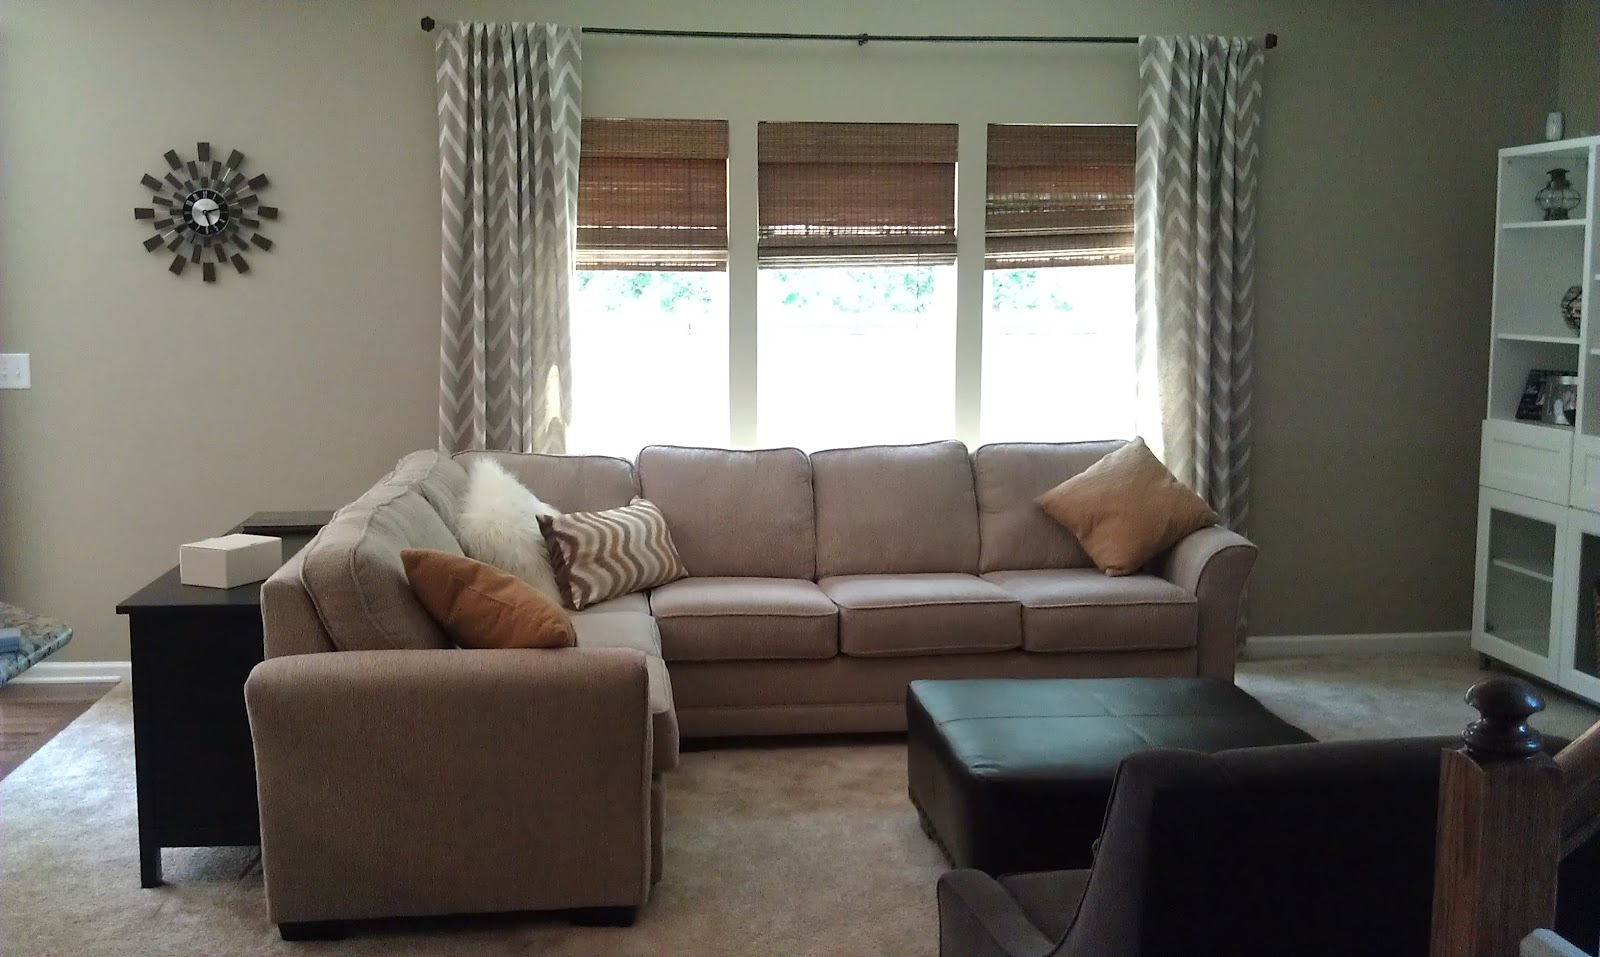 Younger Sofa James Crate And Barrel Full Sleeper Building Our Joyce With Ryan Homes Family Room